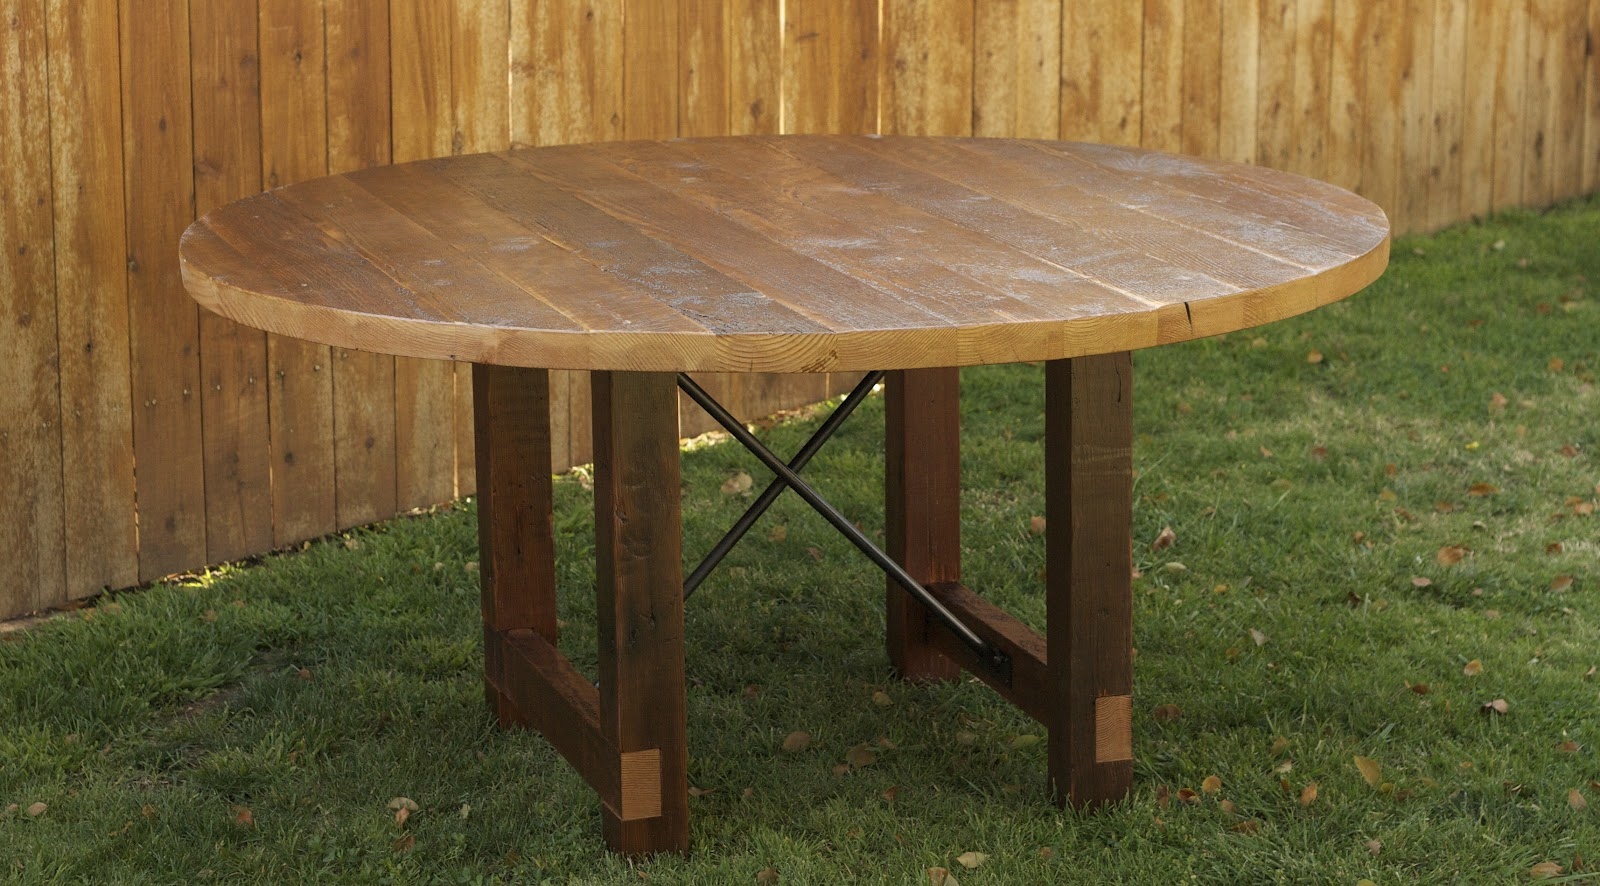 Arbor Exchange | Reclaimed Wood Furniture: Round Dining Table With Metal X Good Ideas